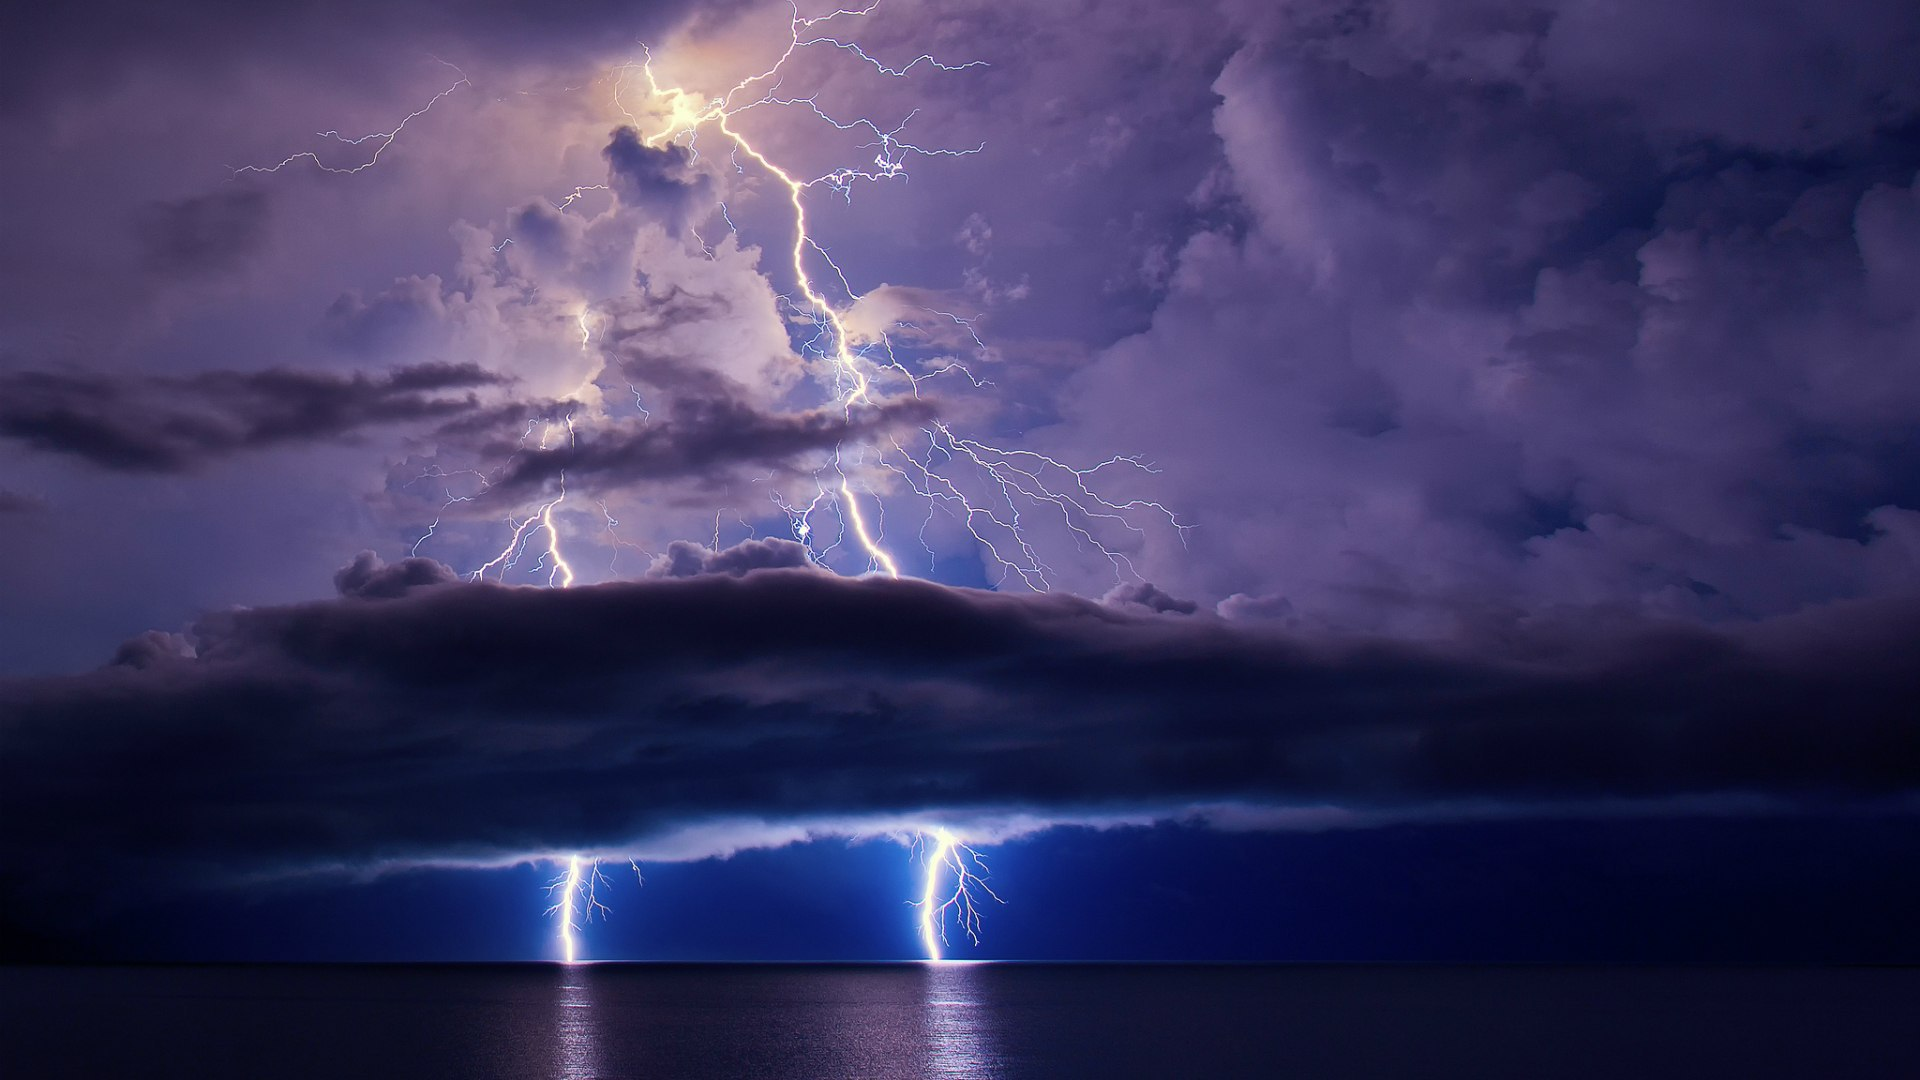 Lightning Storm Over The Ocean Full HD Wallpaper And Background